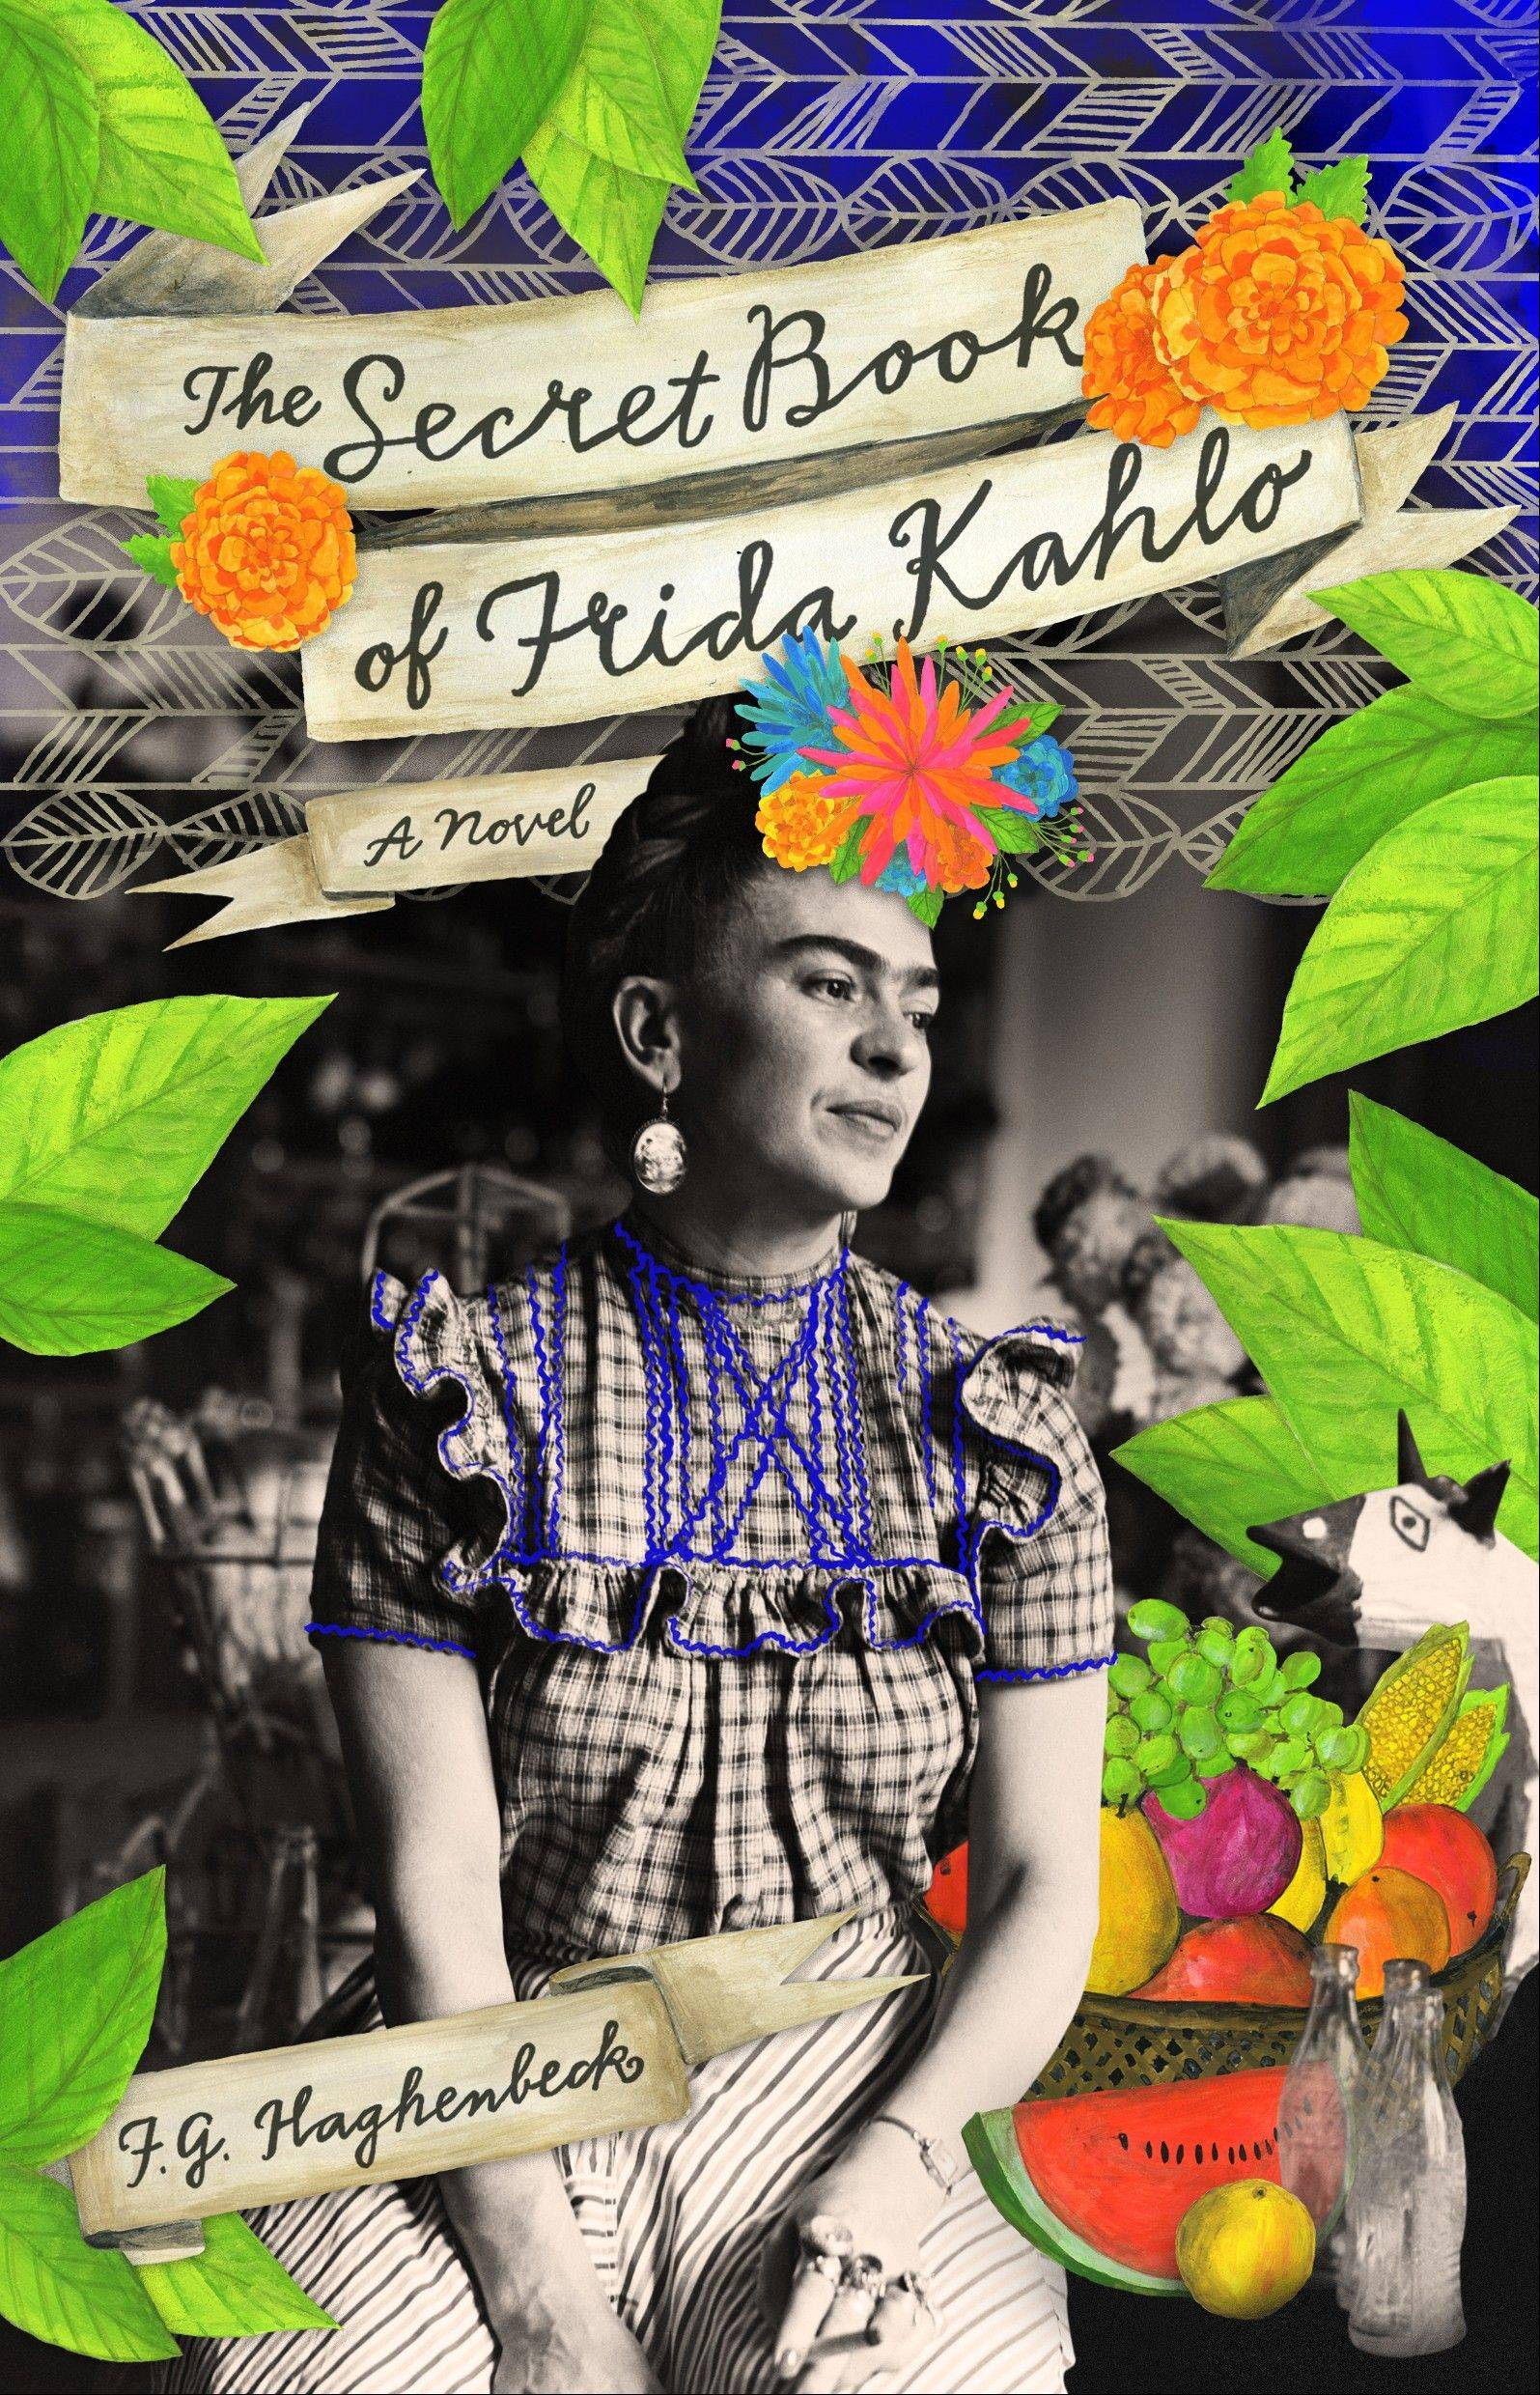 """The Secret Book of Frida Kahlo"" by F. G. Haghenbeck"